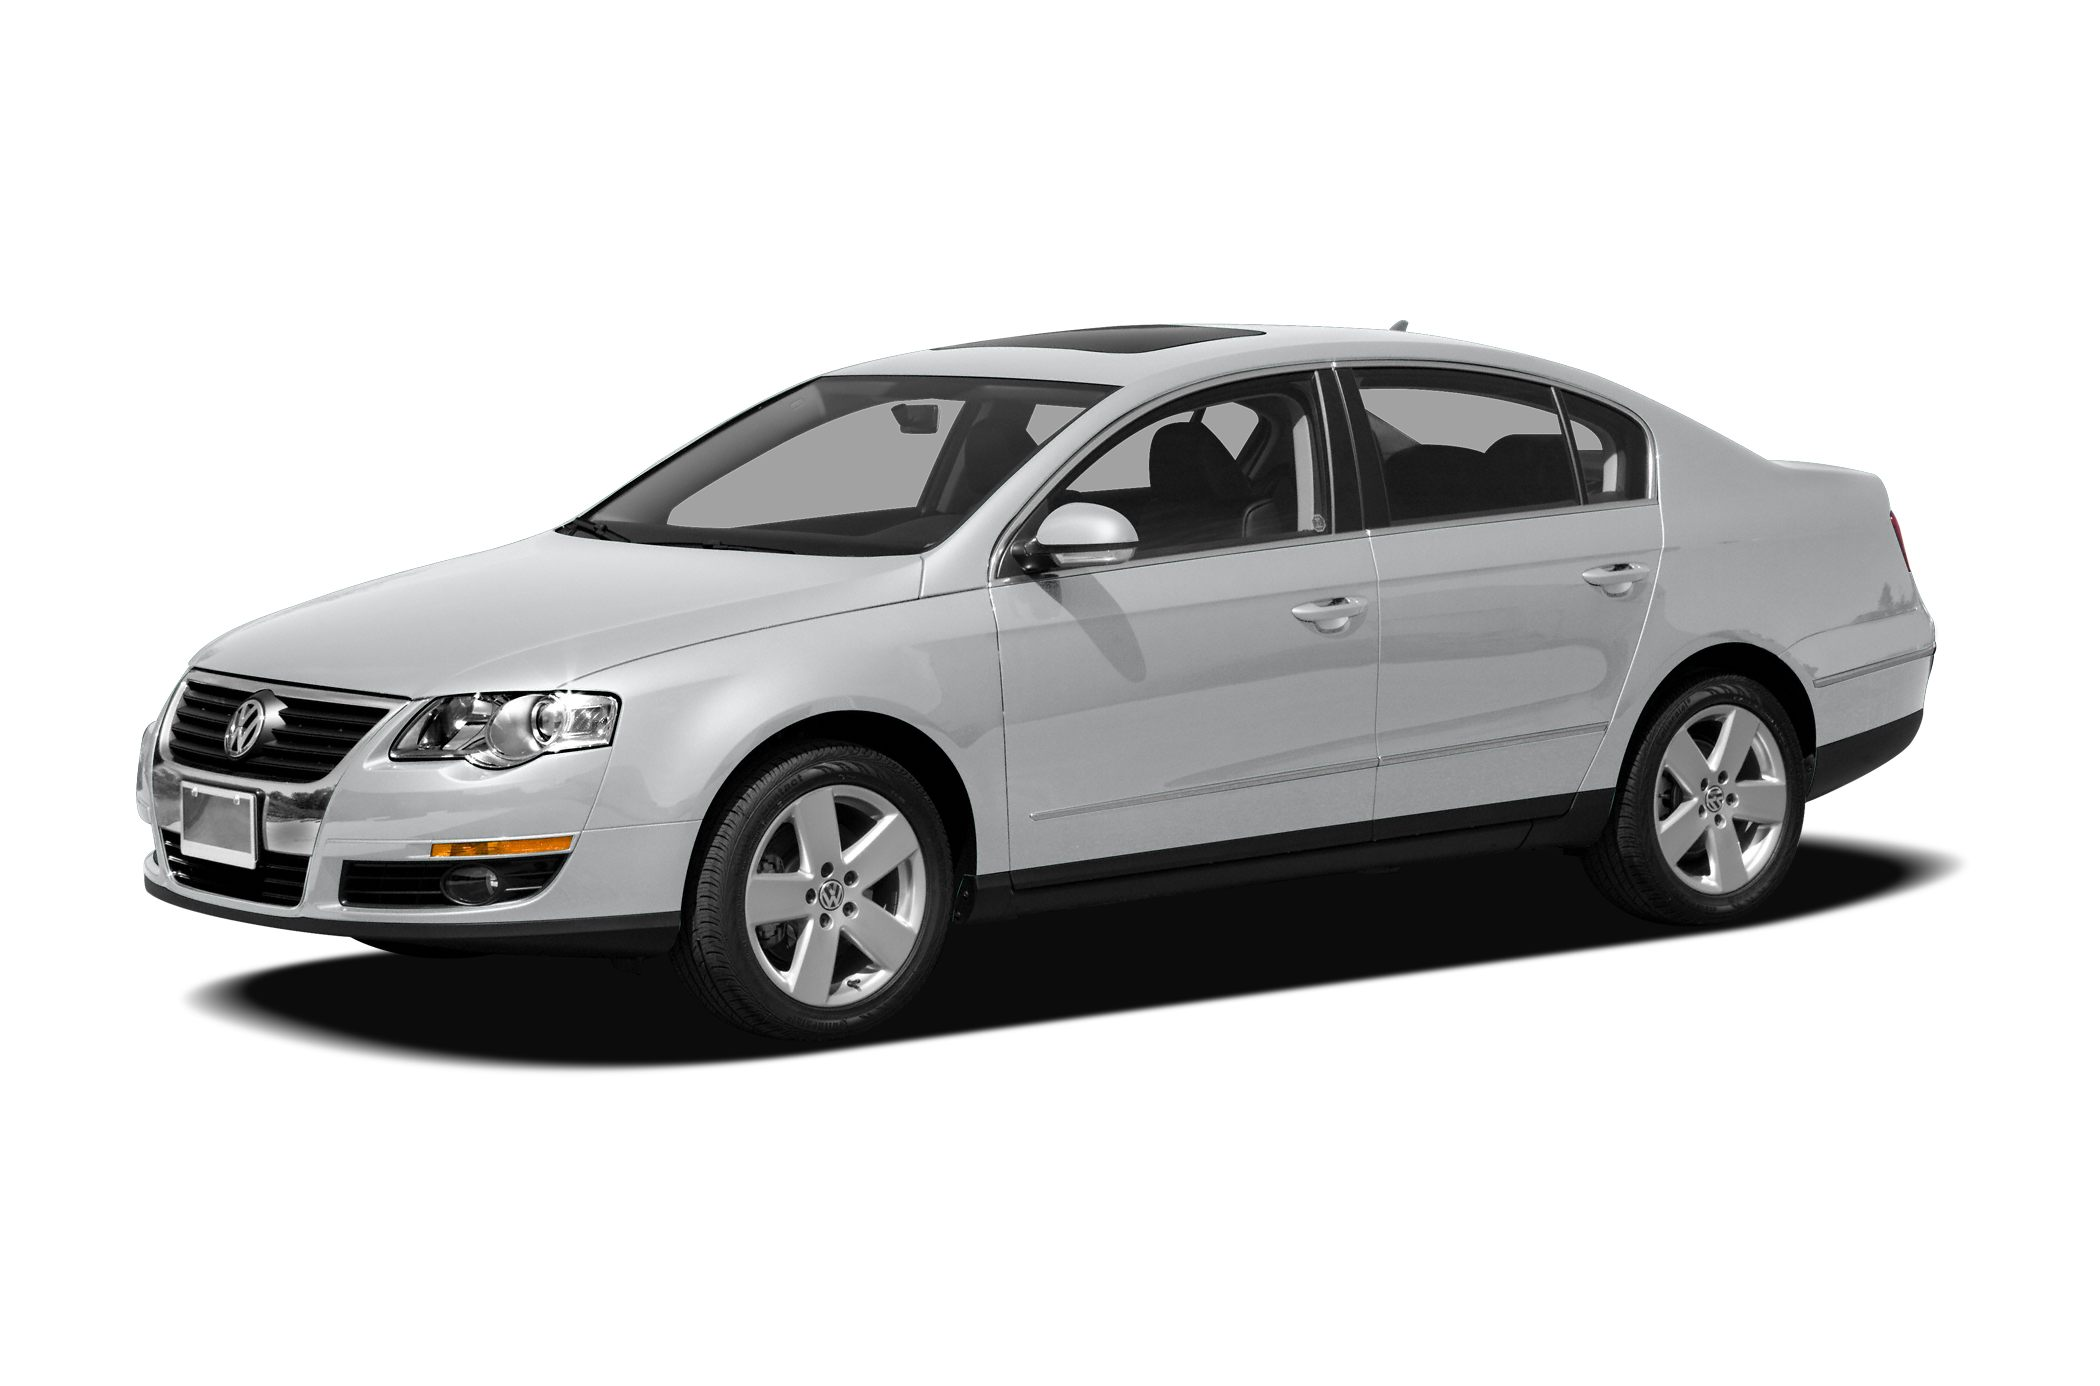 2008 Volkswagen Passat Komfort Wagon for sale in San Diego for $9,998 with 139,877 miles